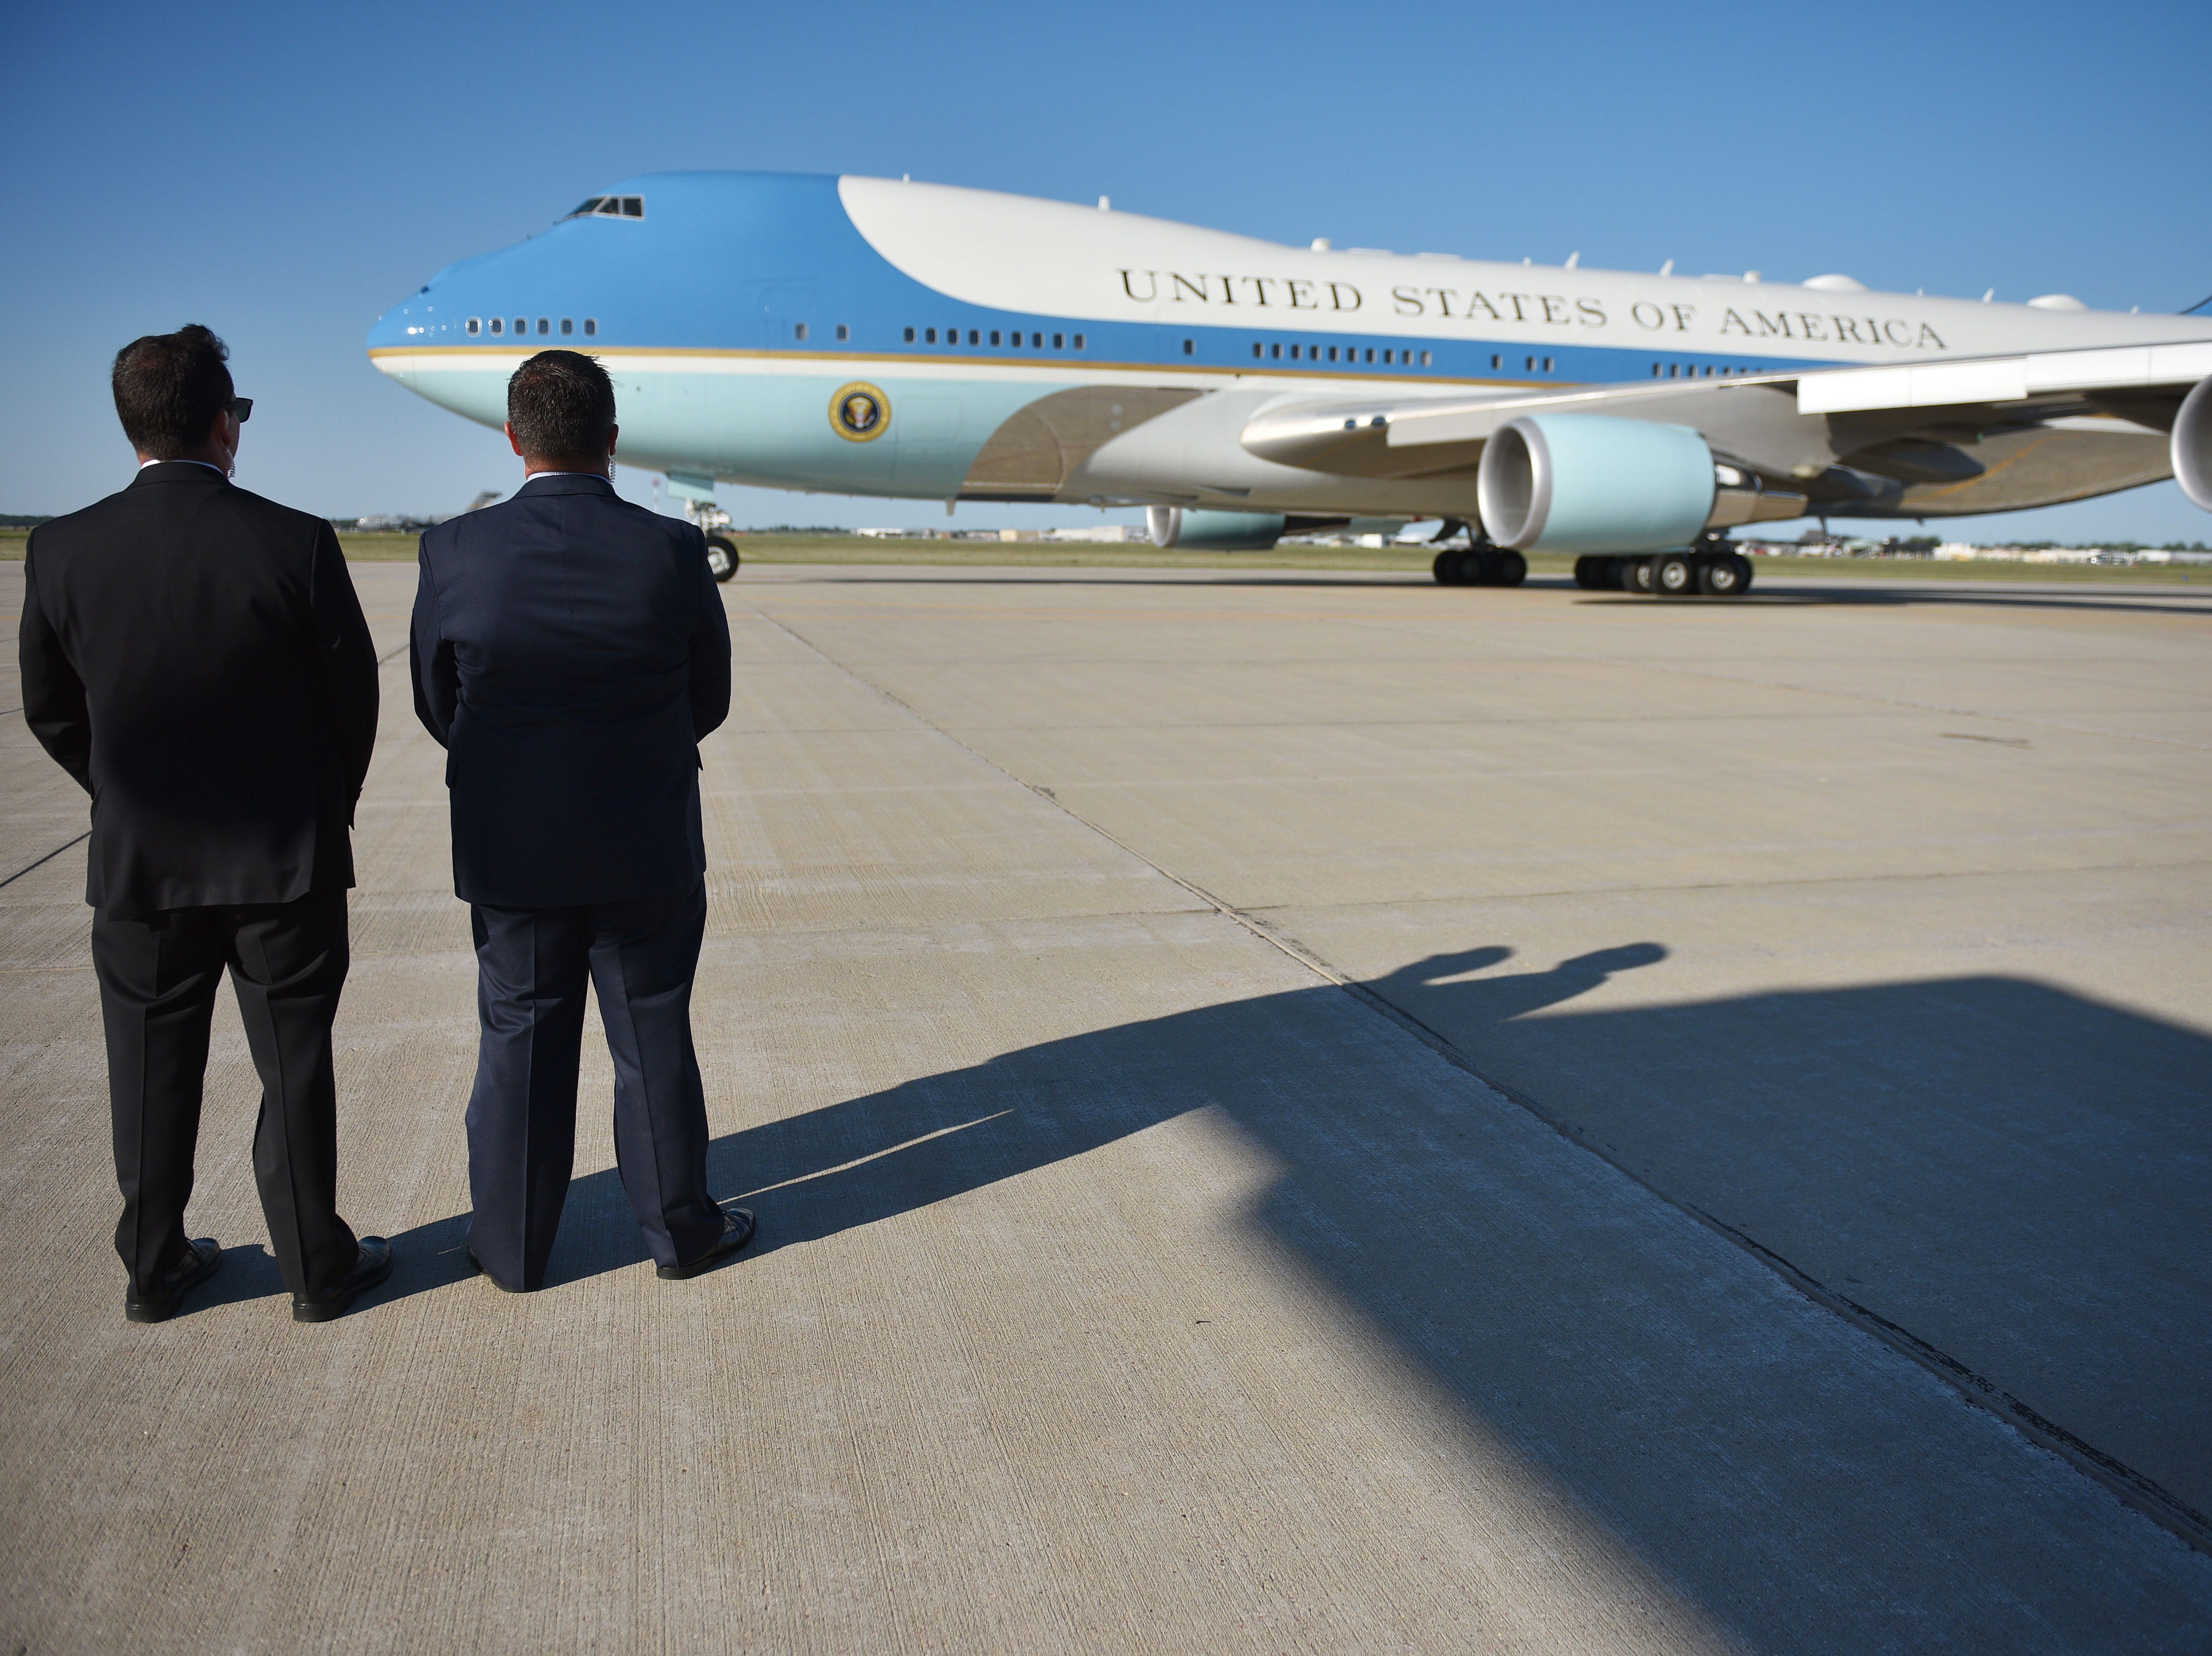 Security watches Air Force One take off after President Donald Trump's visit to Sioux Falls Friday, Sept. 7, at South Dakota Air National Guard in Sioux Falls.